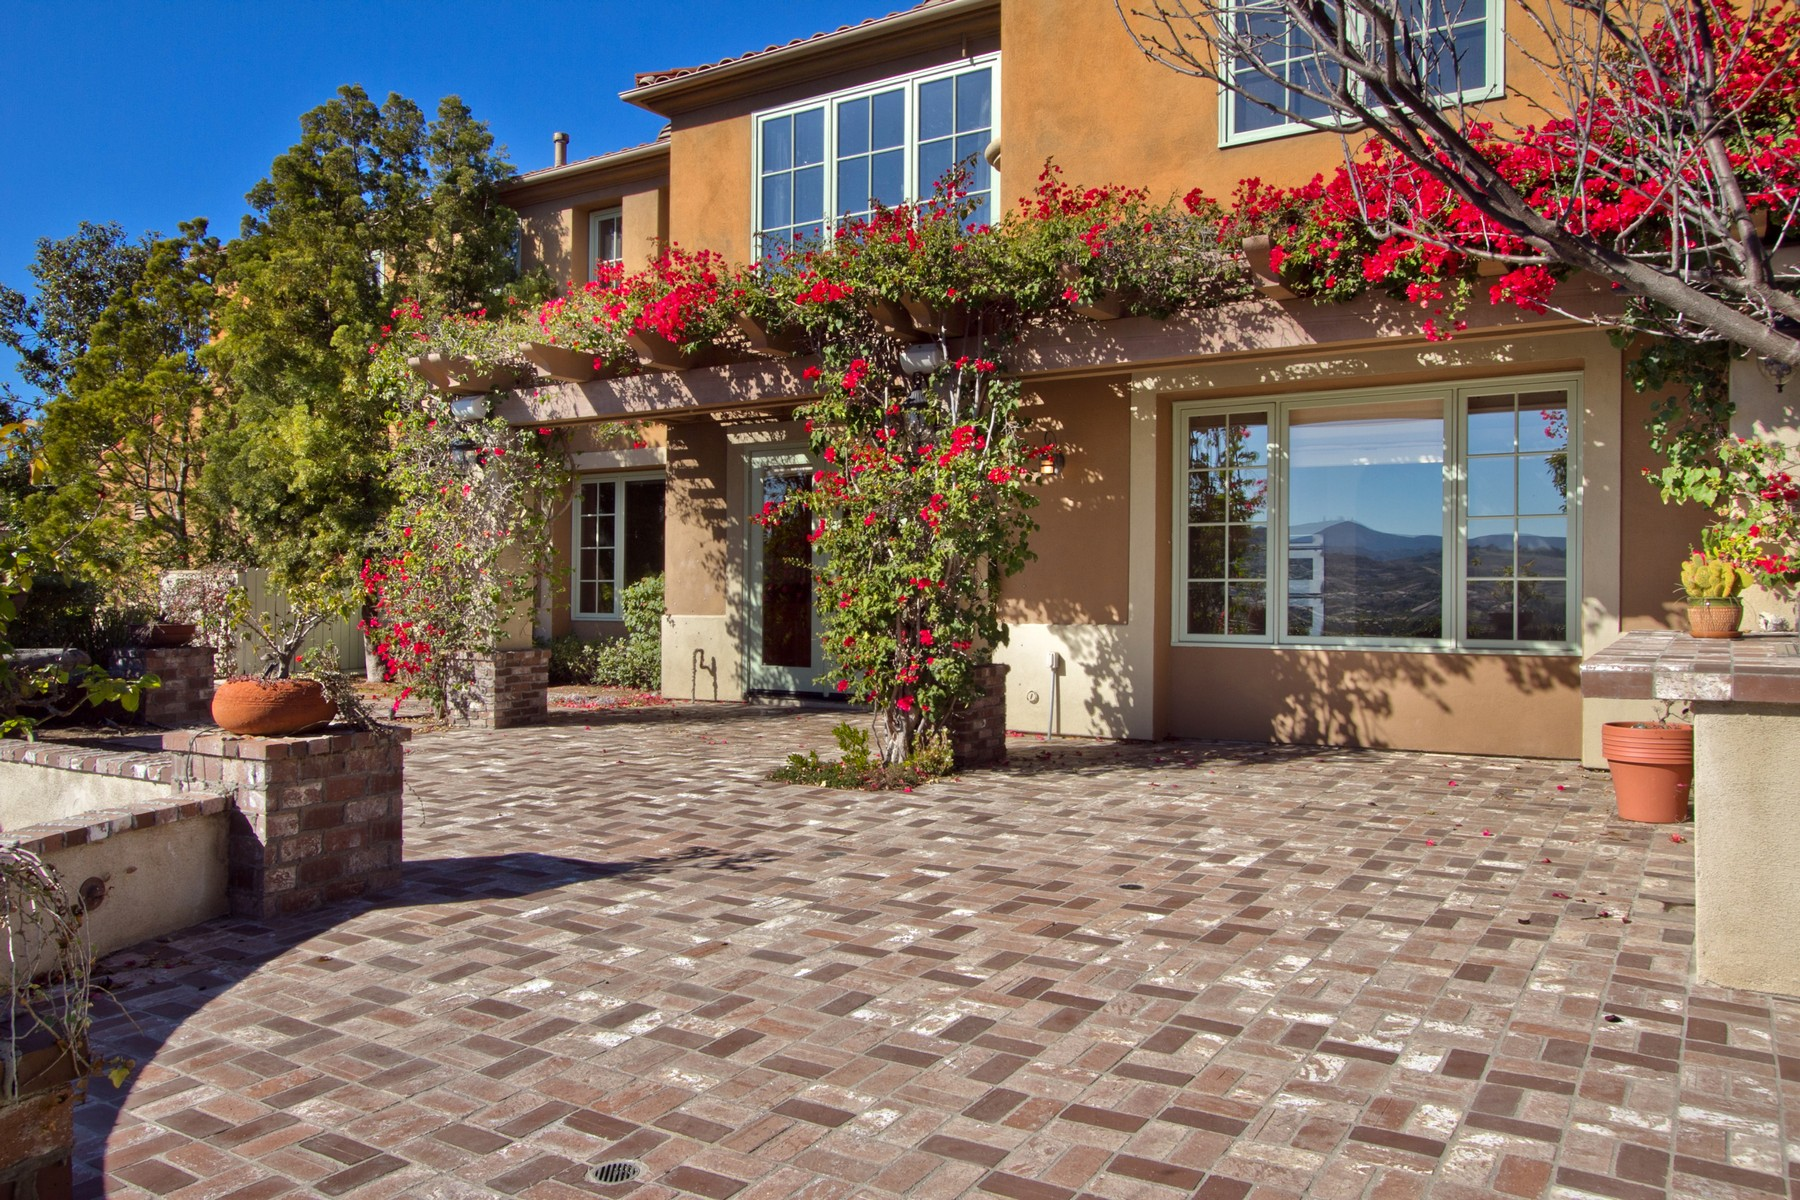 Additional photo for property listing at 7831 Camino De La Dora  Rancho Santa Fe, Californie 92067 États-Unis